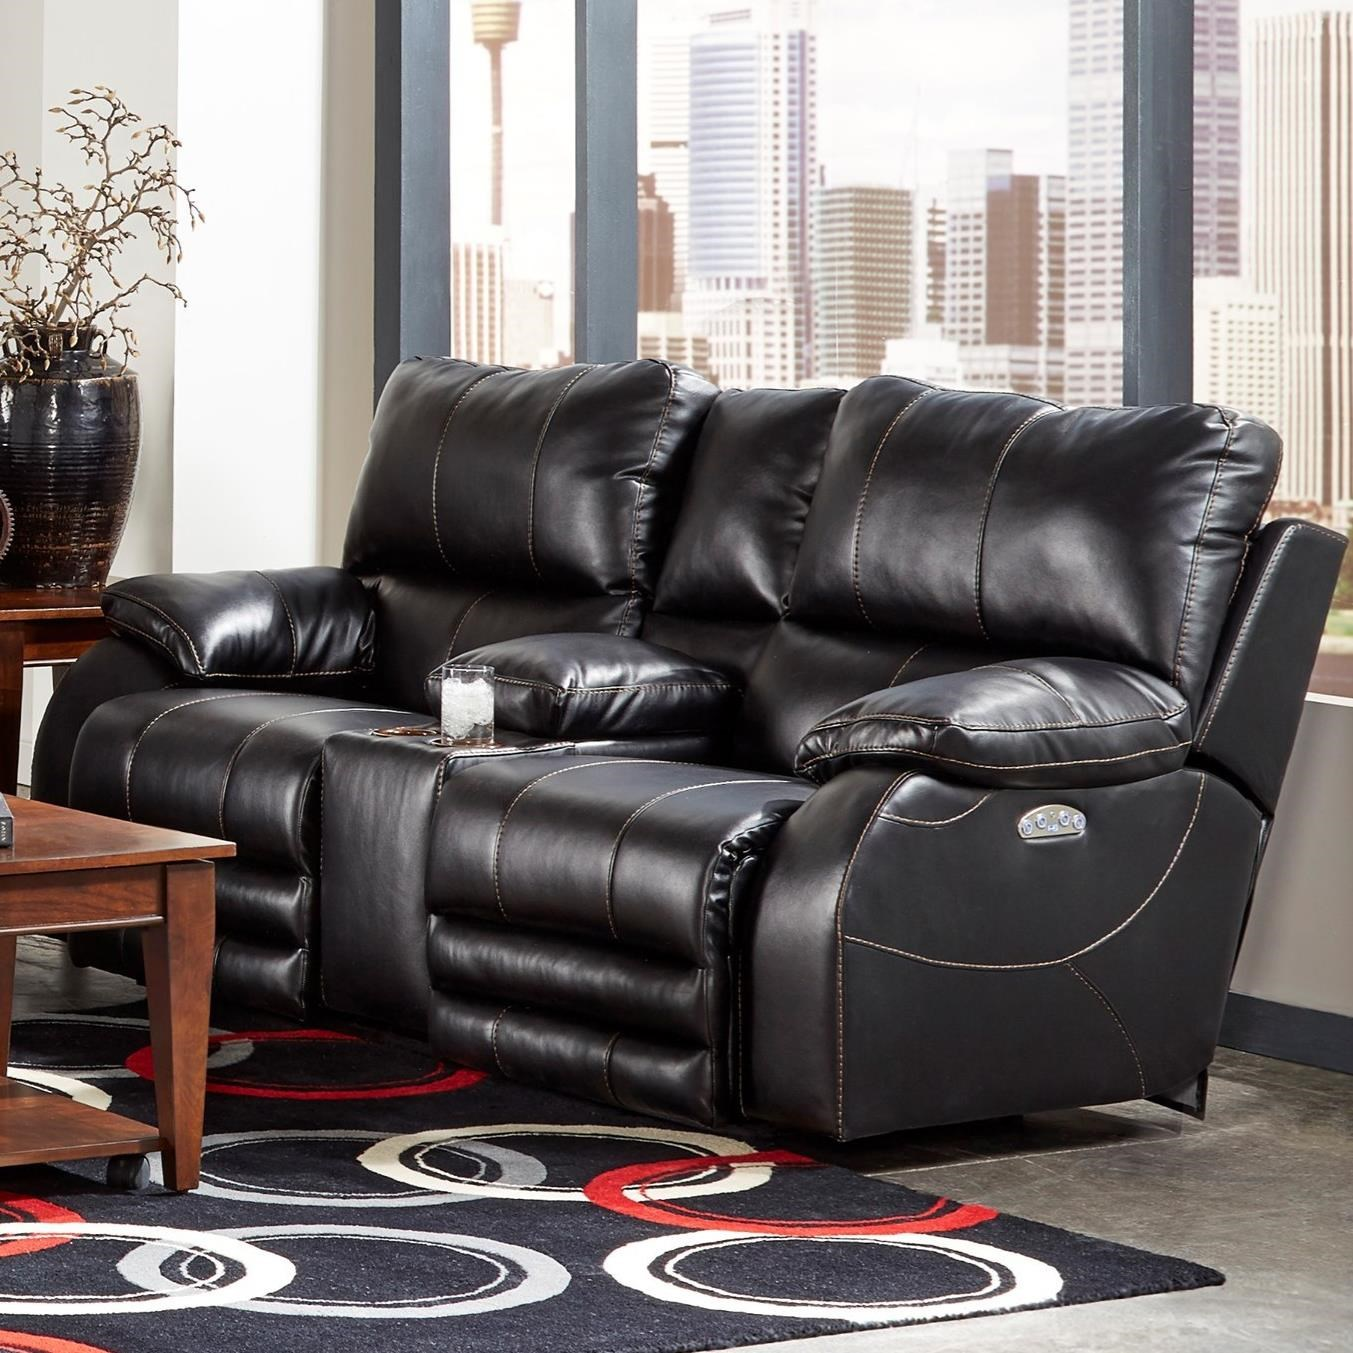 Reclining Collection Power Headrest Power Lay Flat Loveseat by Catnapper at Pedigo Furniture